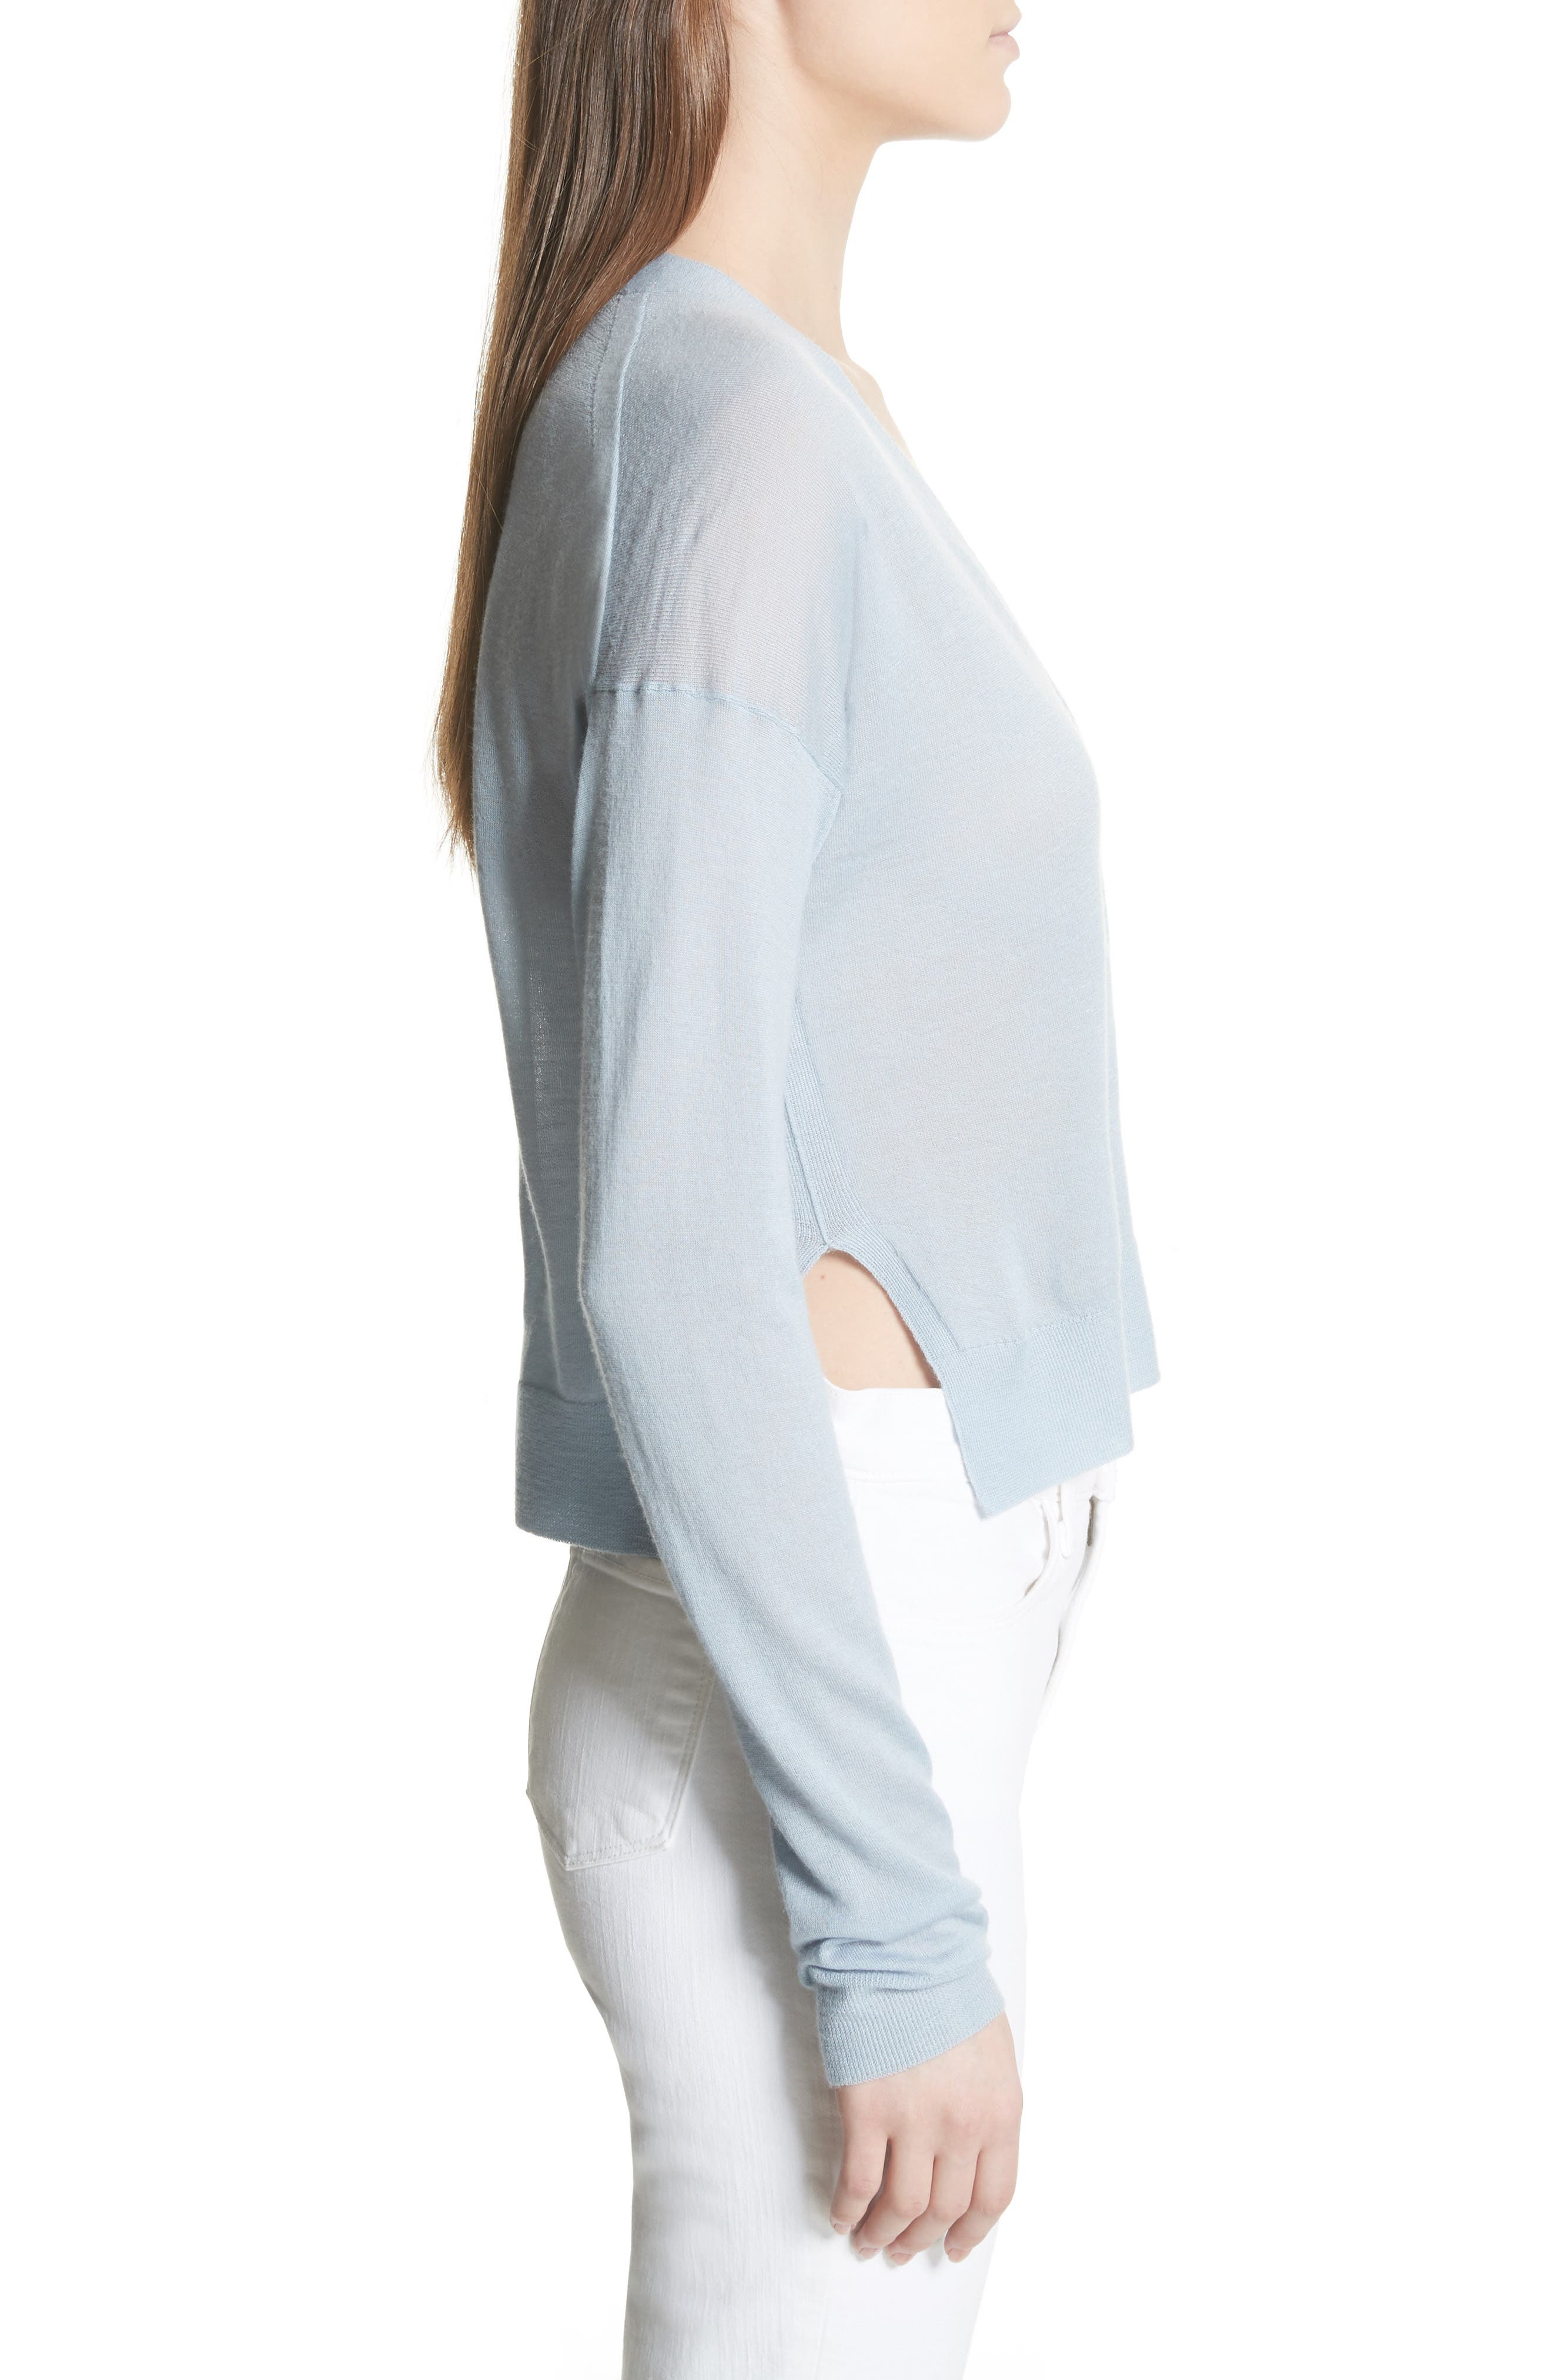 Hanelee Featherweight Cashmere Cardigan,                             Alternate thumbnail 3, color,                             Baby Bluebell